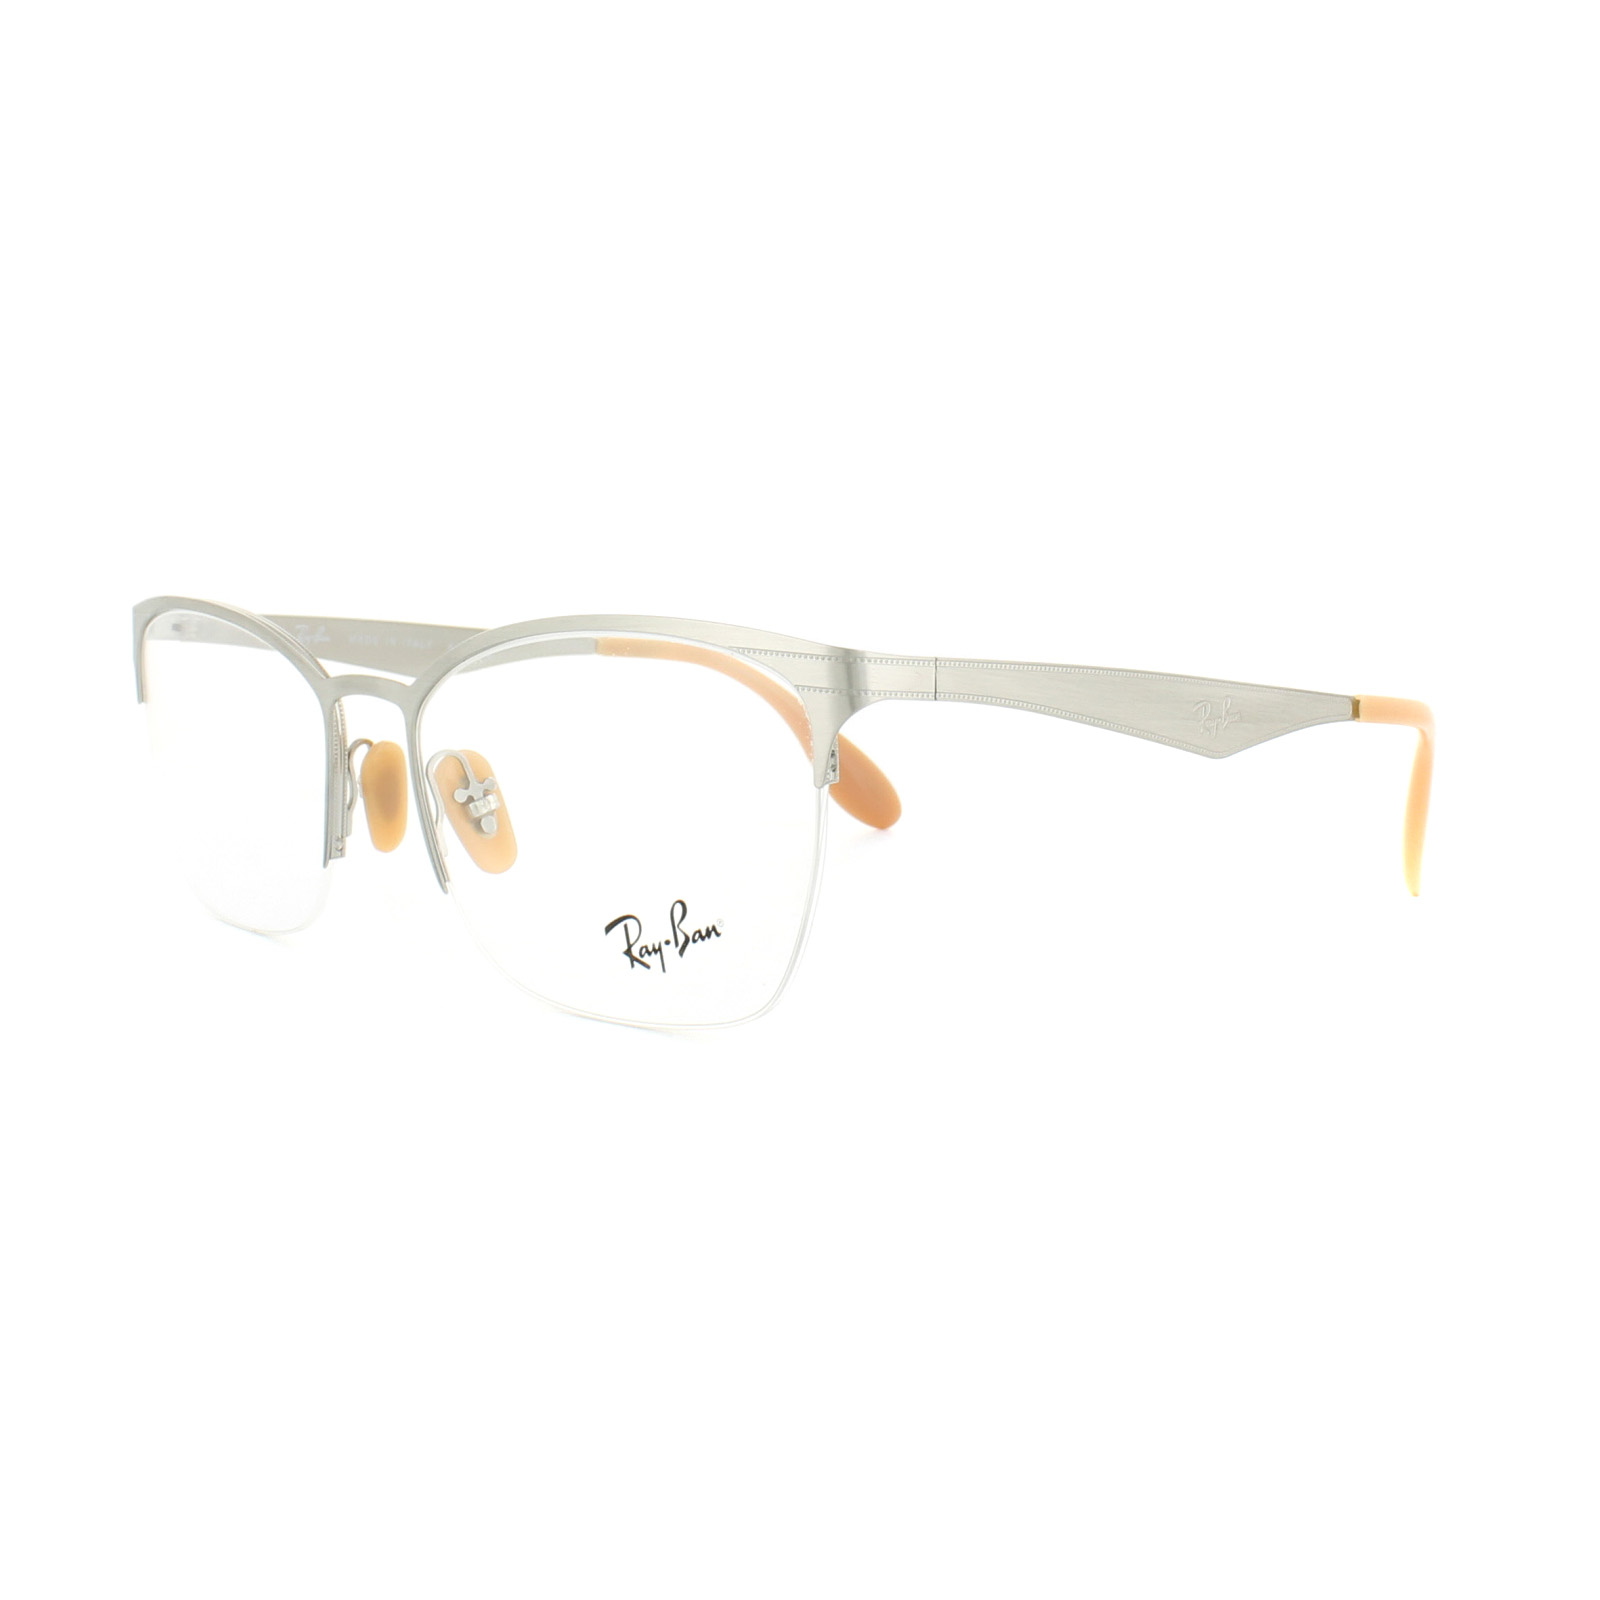 dc9aa8f154fcb Sentinel Ray-Ban Glasses Frames RX 6345 2595 Silver Brushed Womens 52mm